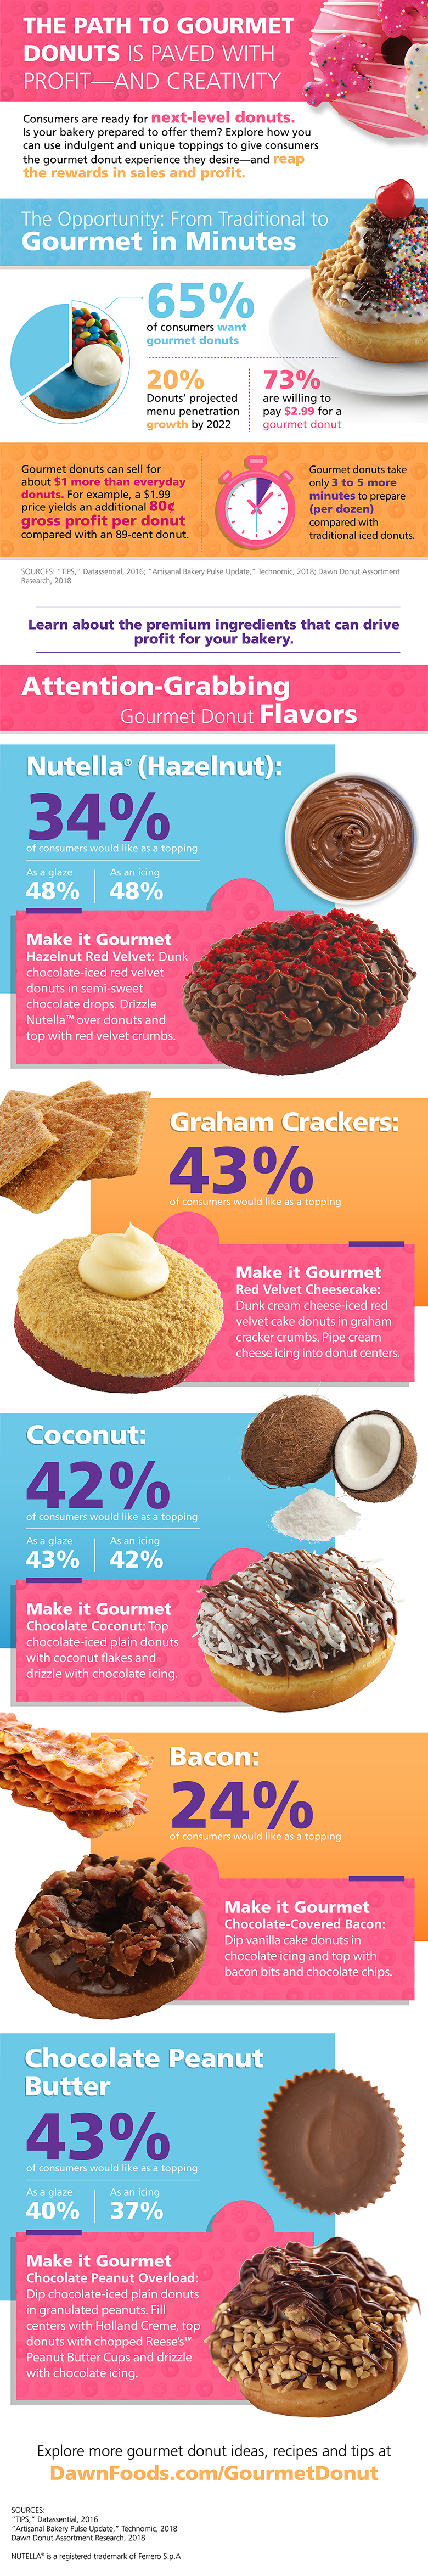 Gourmet Donut Infographic revised